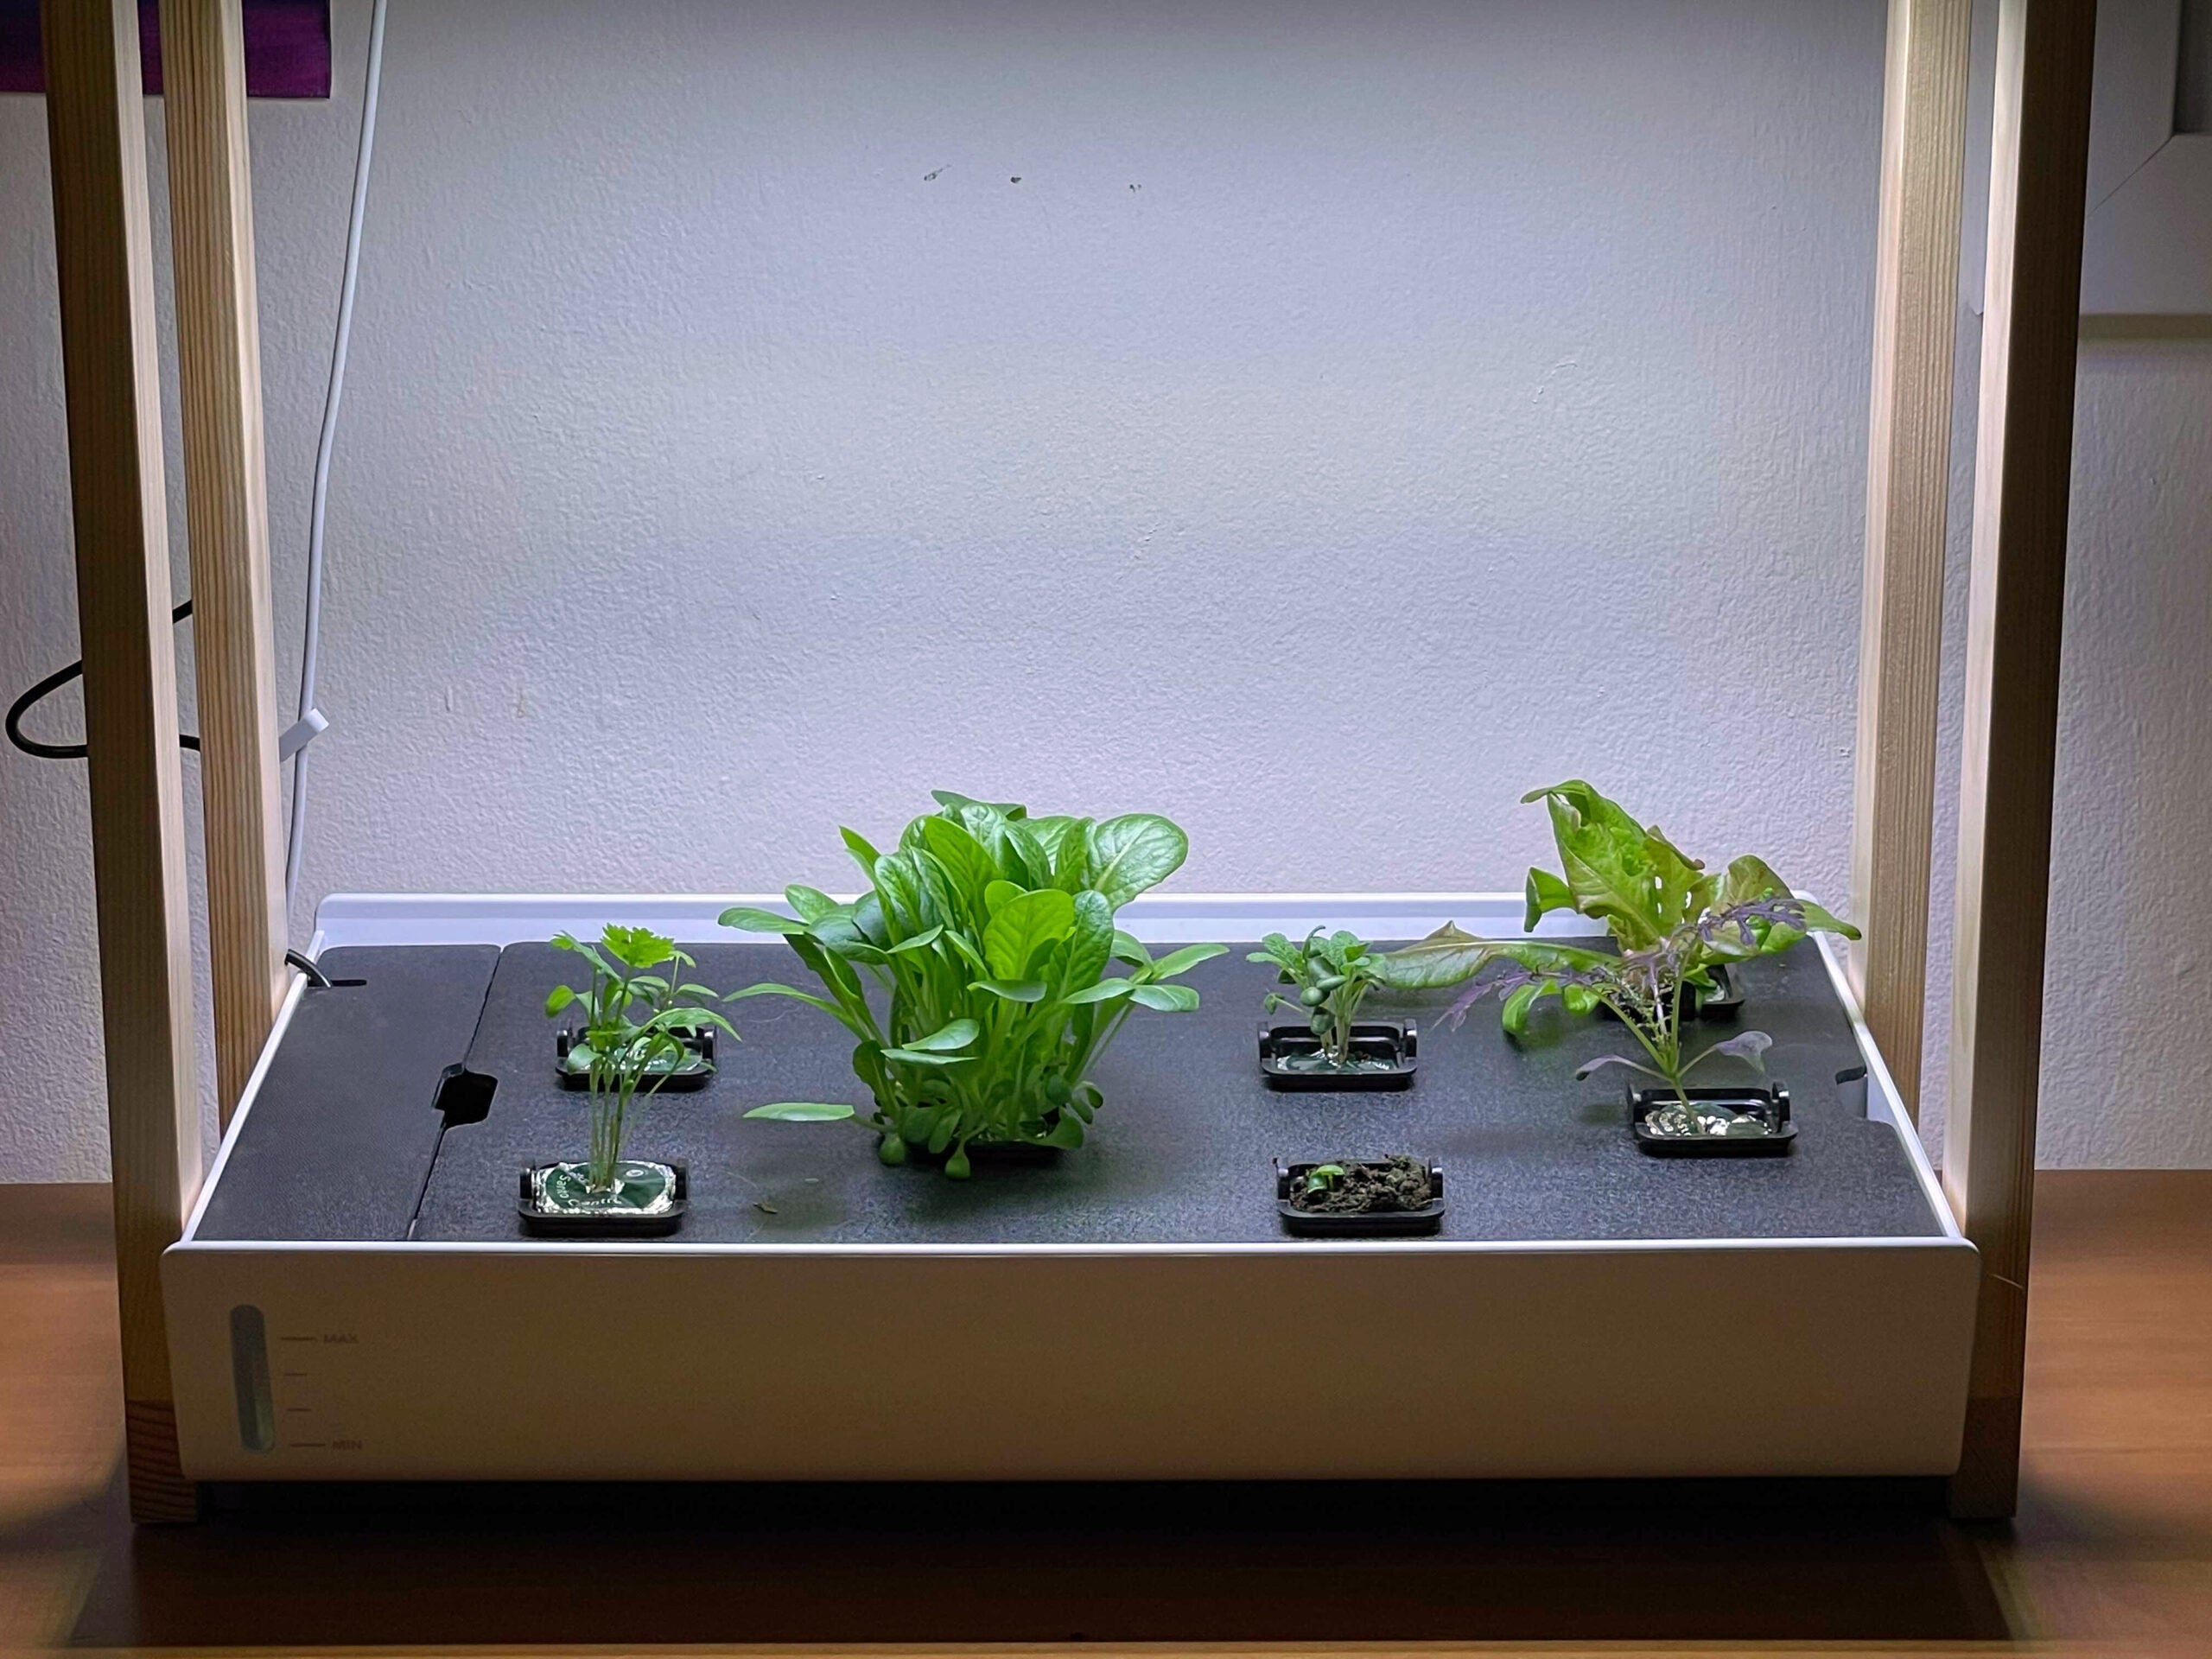 Personal Rise Garden sprouting seed pods